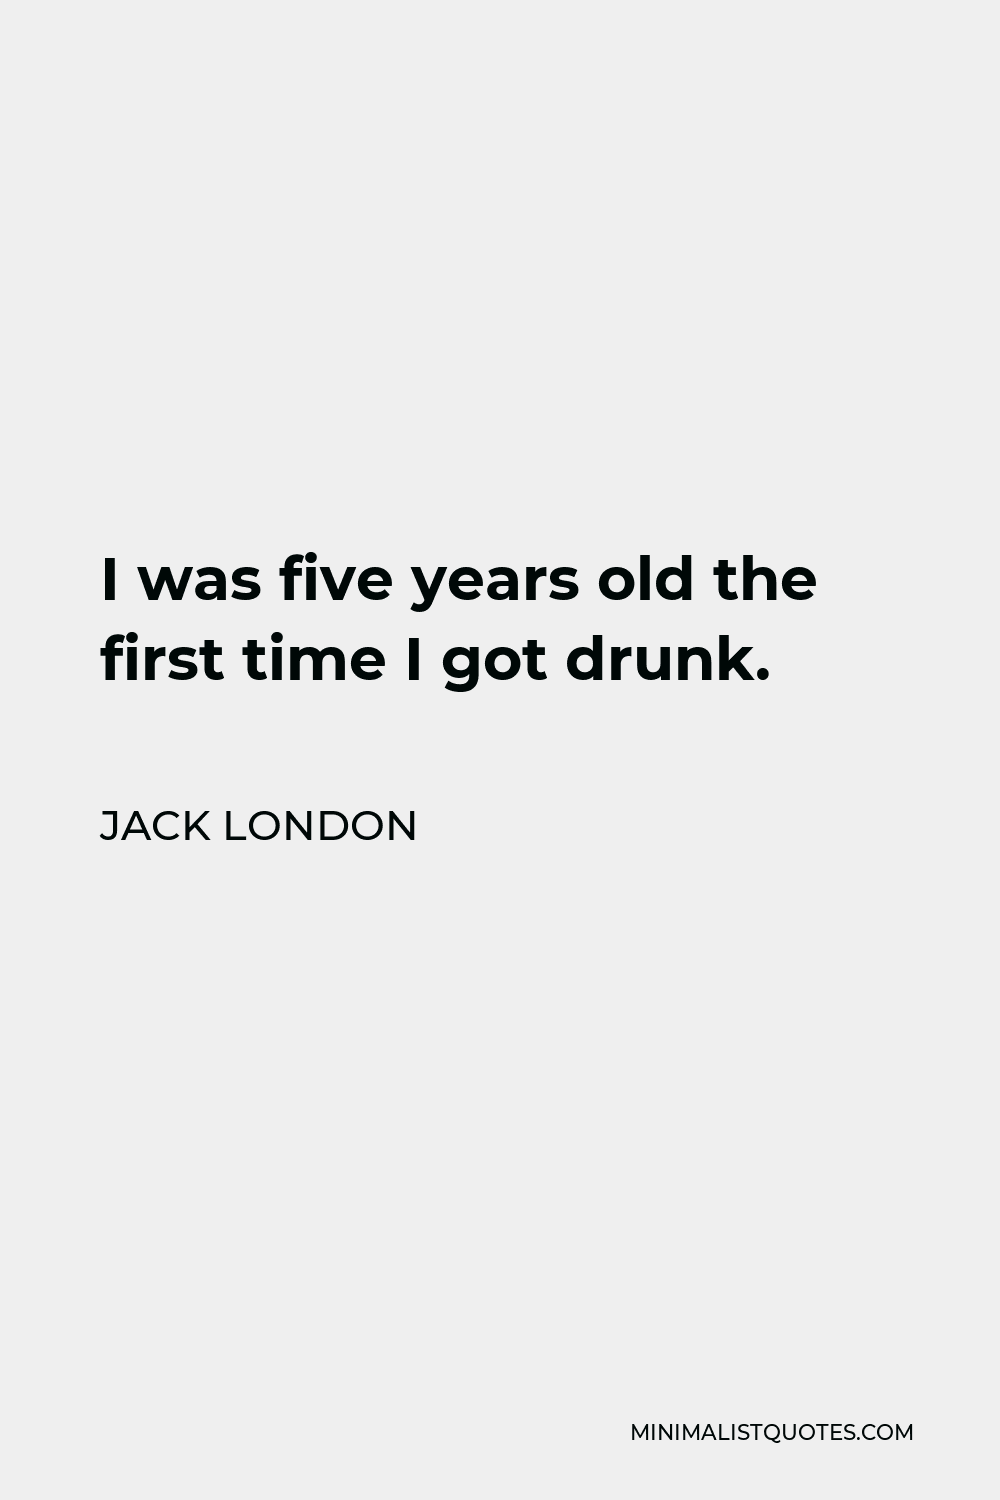 Jack London Quote - I was five years old the first time I got drunk.